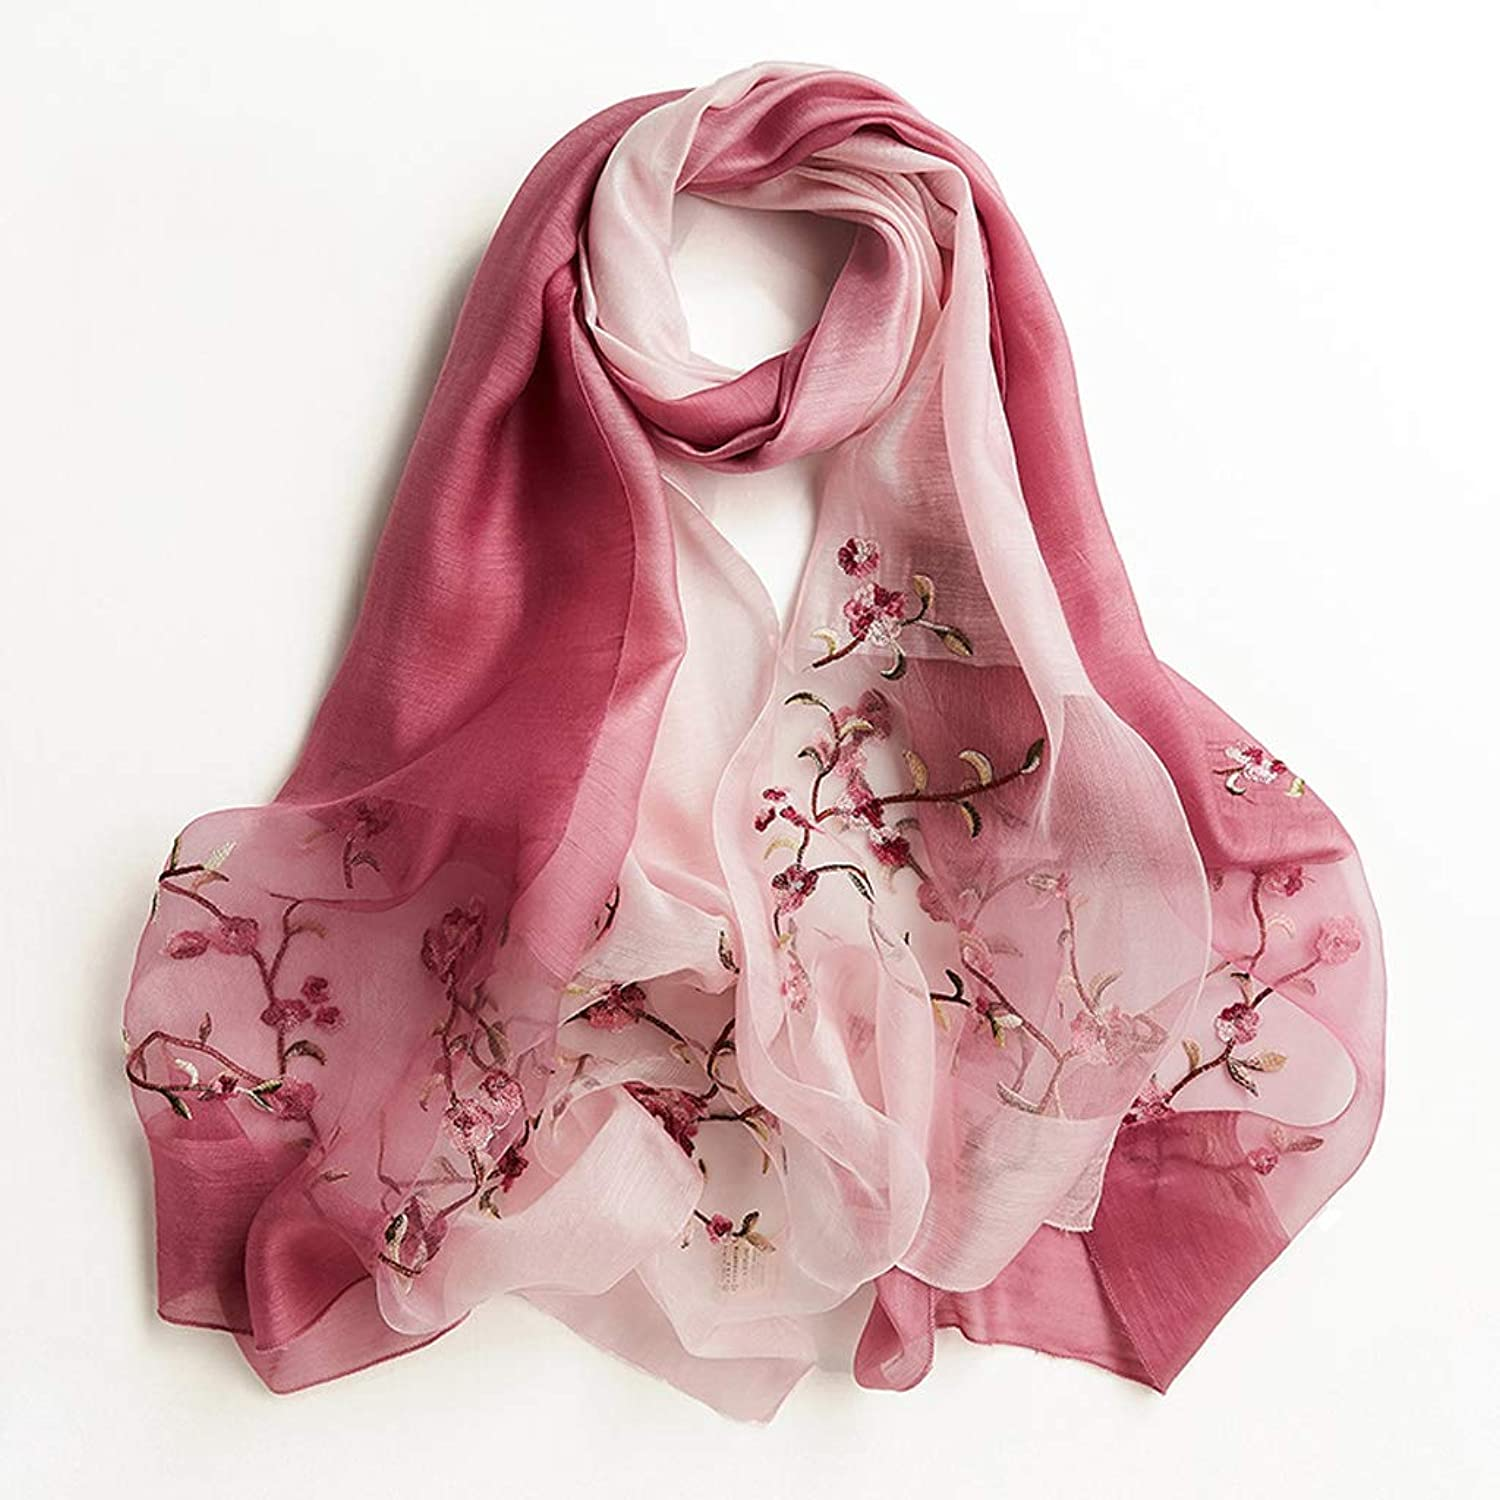 Personality Fashion Autumn Scarf Creative Simple Shawl Exquisite Birthday Gift (color   B)